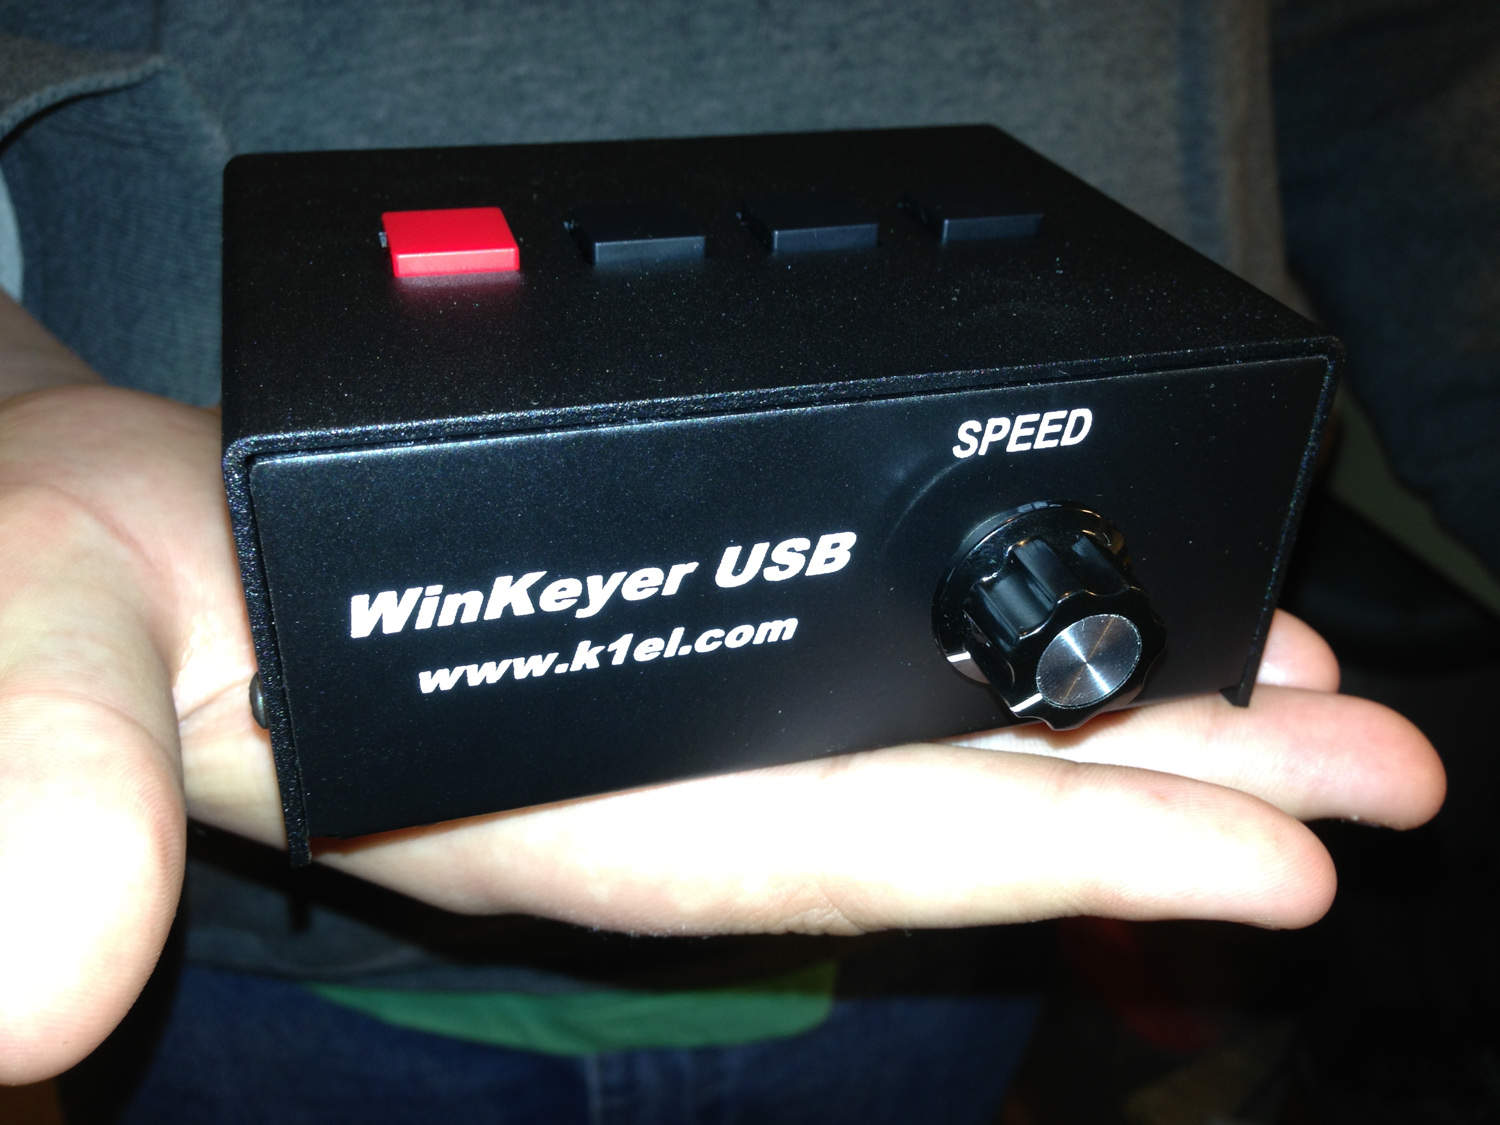 K1EL USB Winkeyer (It is a must have tool)